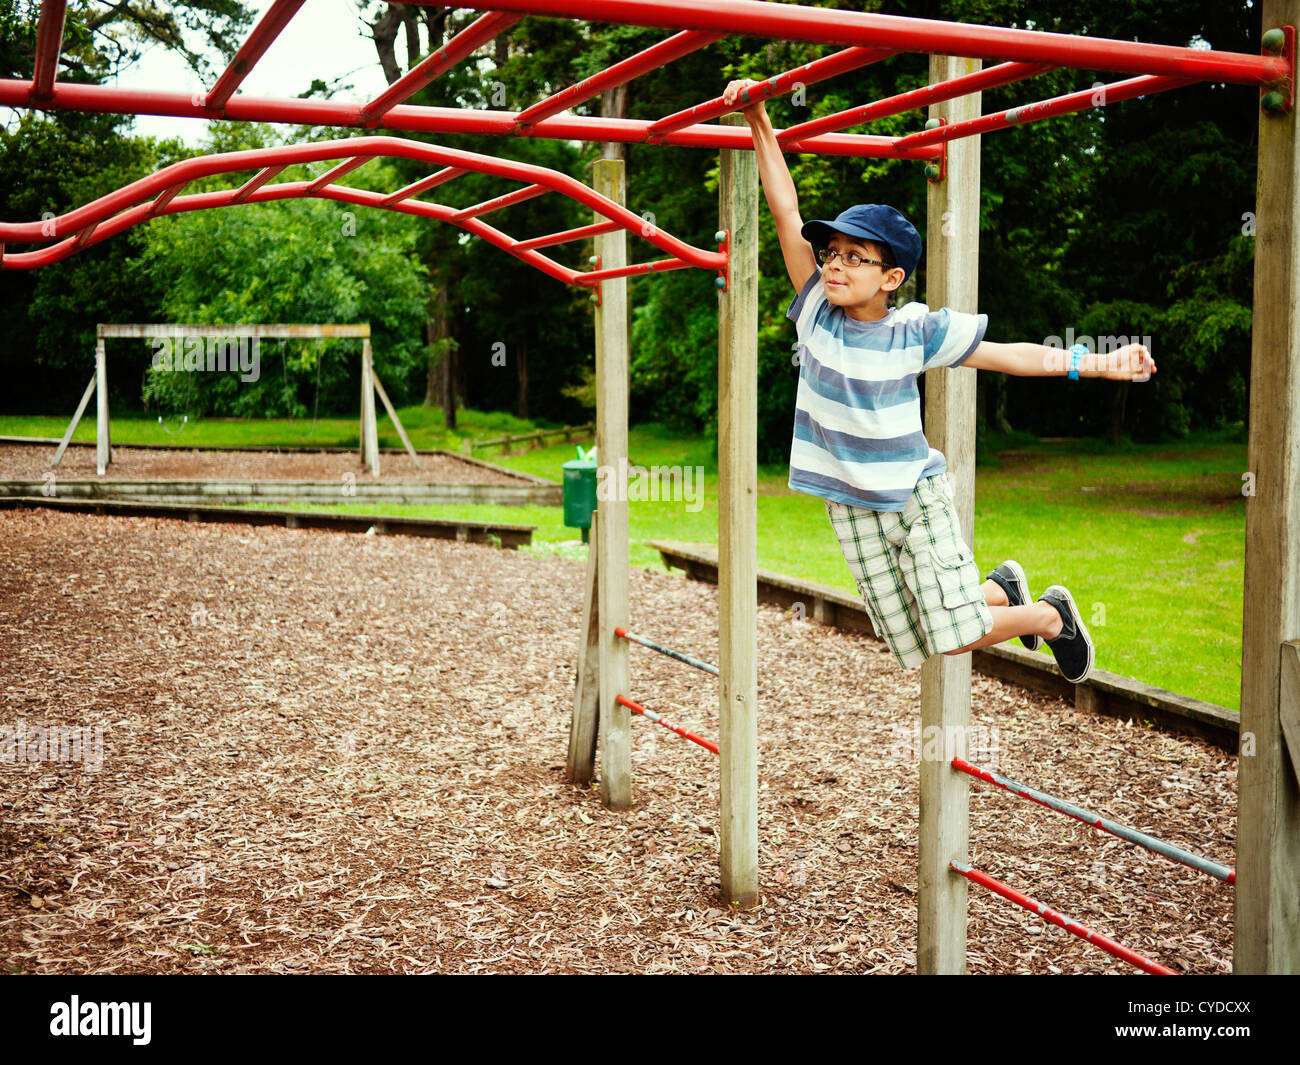 Confirm. swinging at the playground